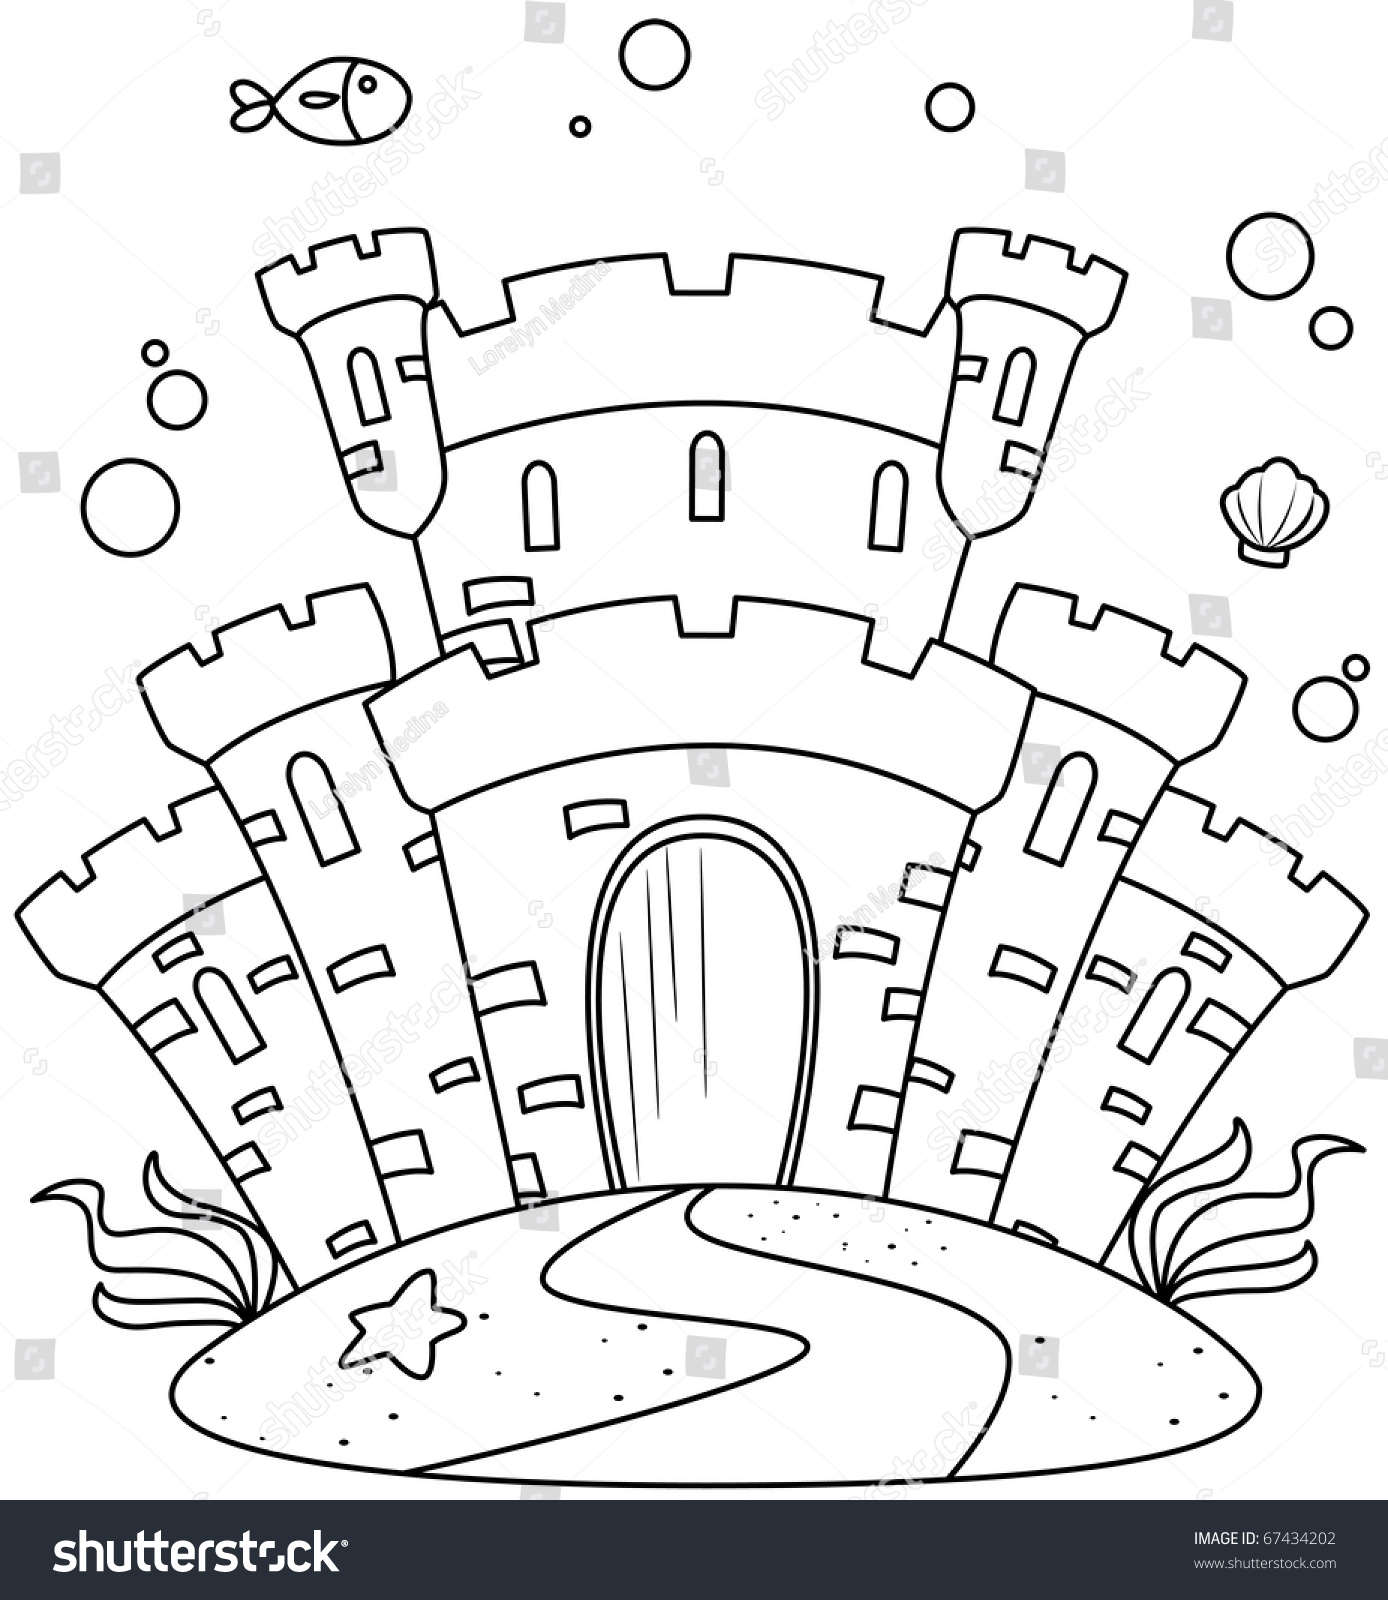 Coloring pages under the sea - Line Art Illustration Of A Castle Under The Sea Coloring Page